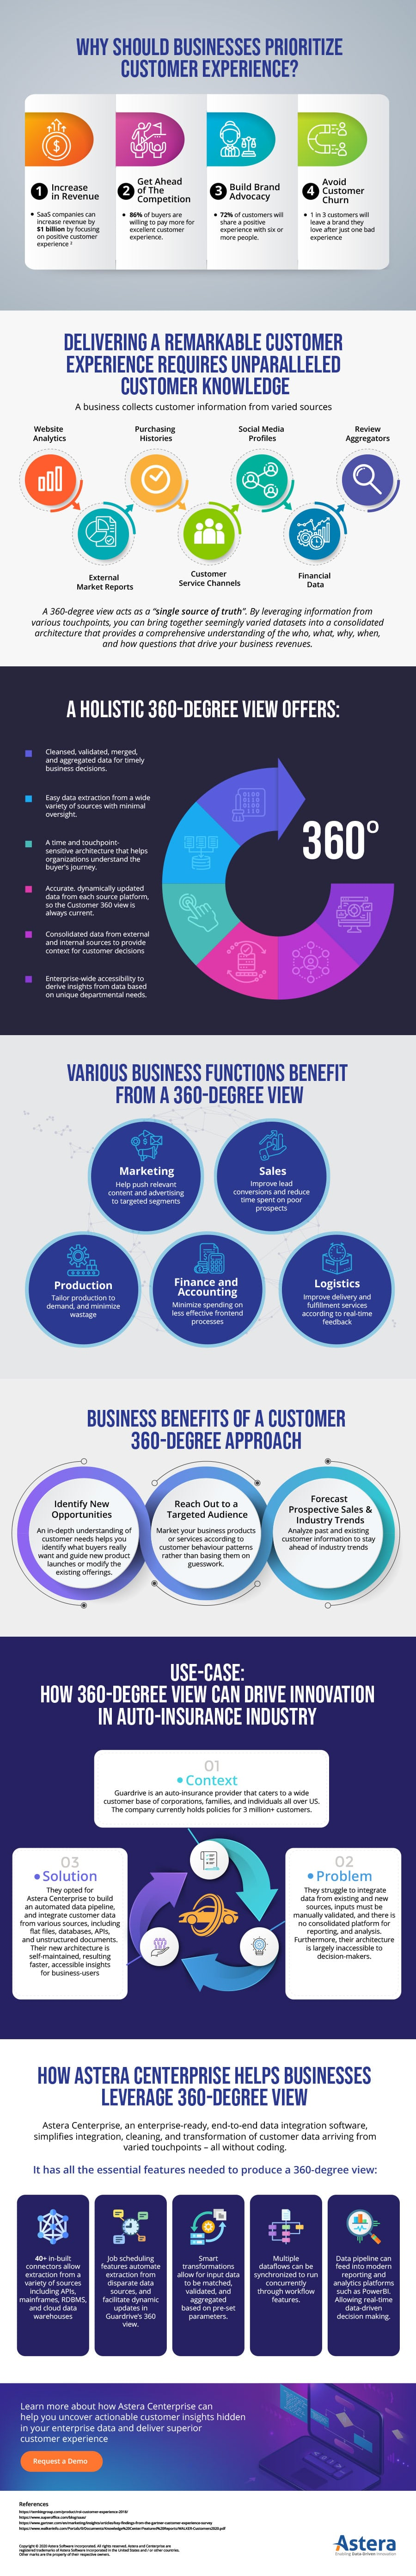 Gain Insights Into Your Customers & Target Segments With an Integrated Customer 360 View